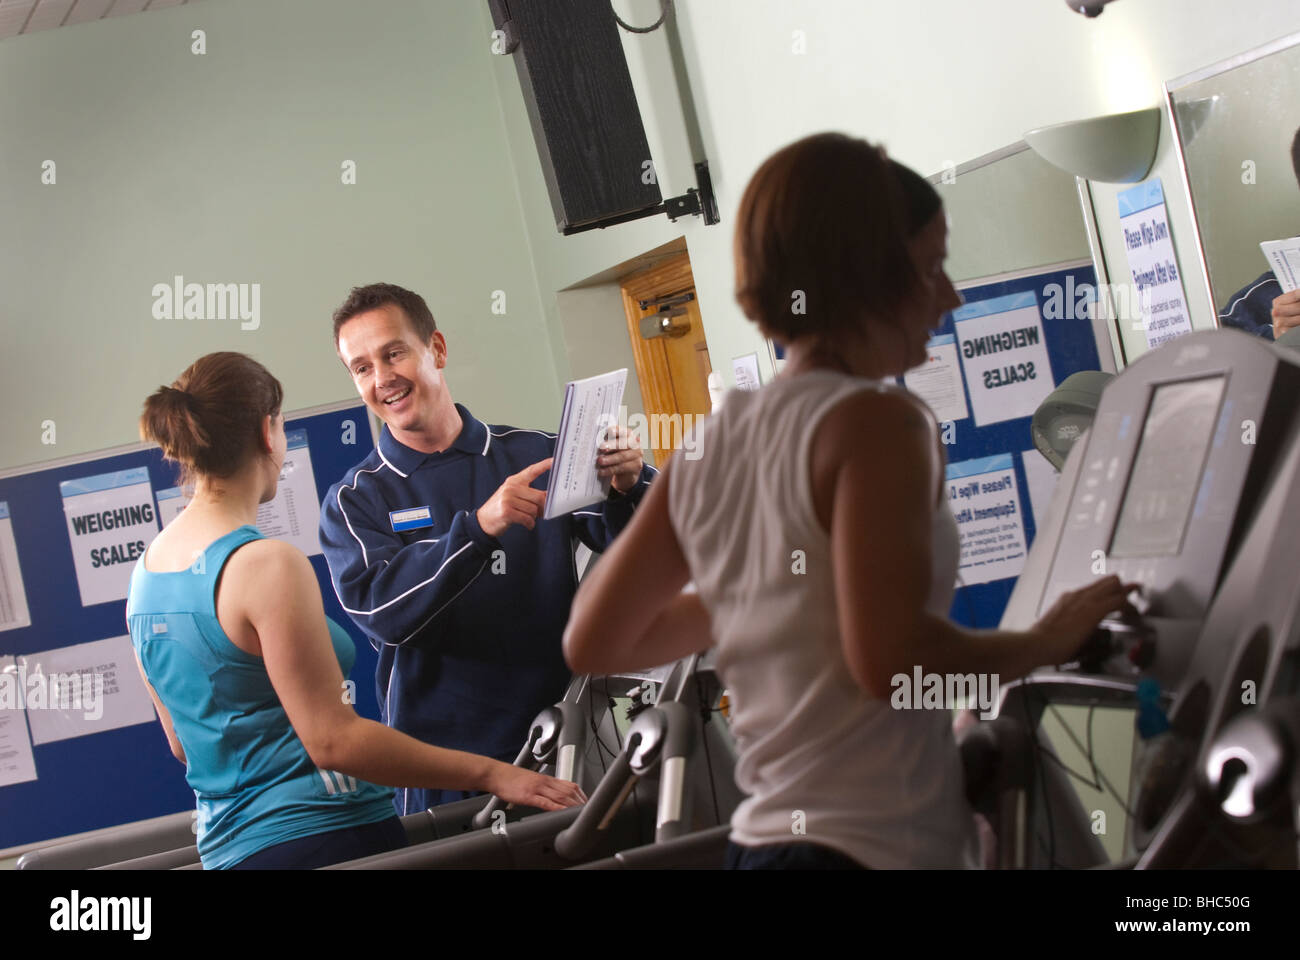 Personal trainer gives an introduction to someone on a treadmill UK - Stock Image